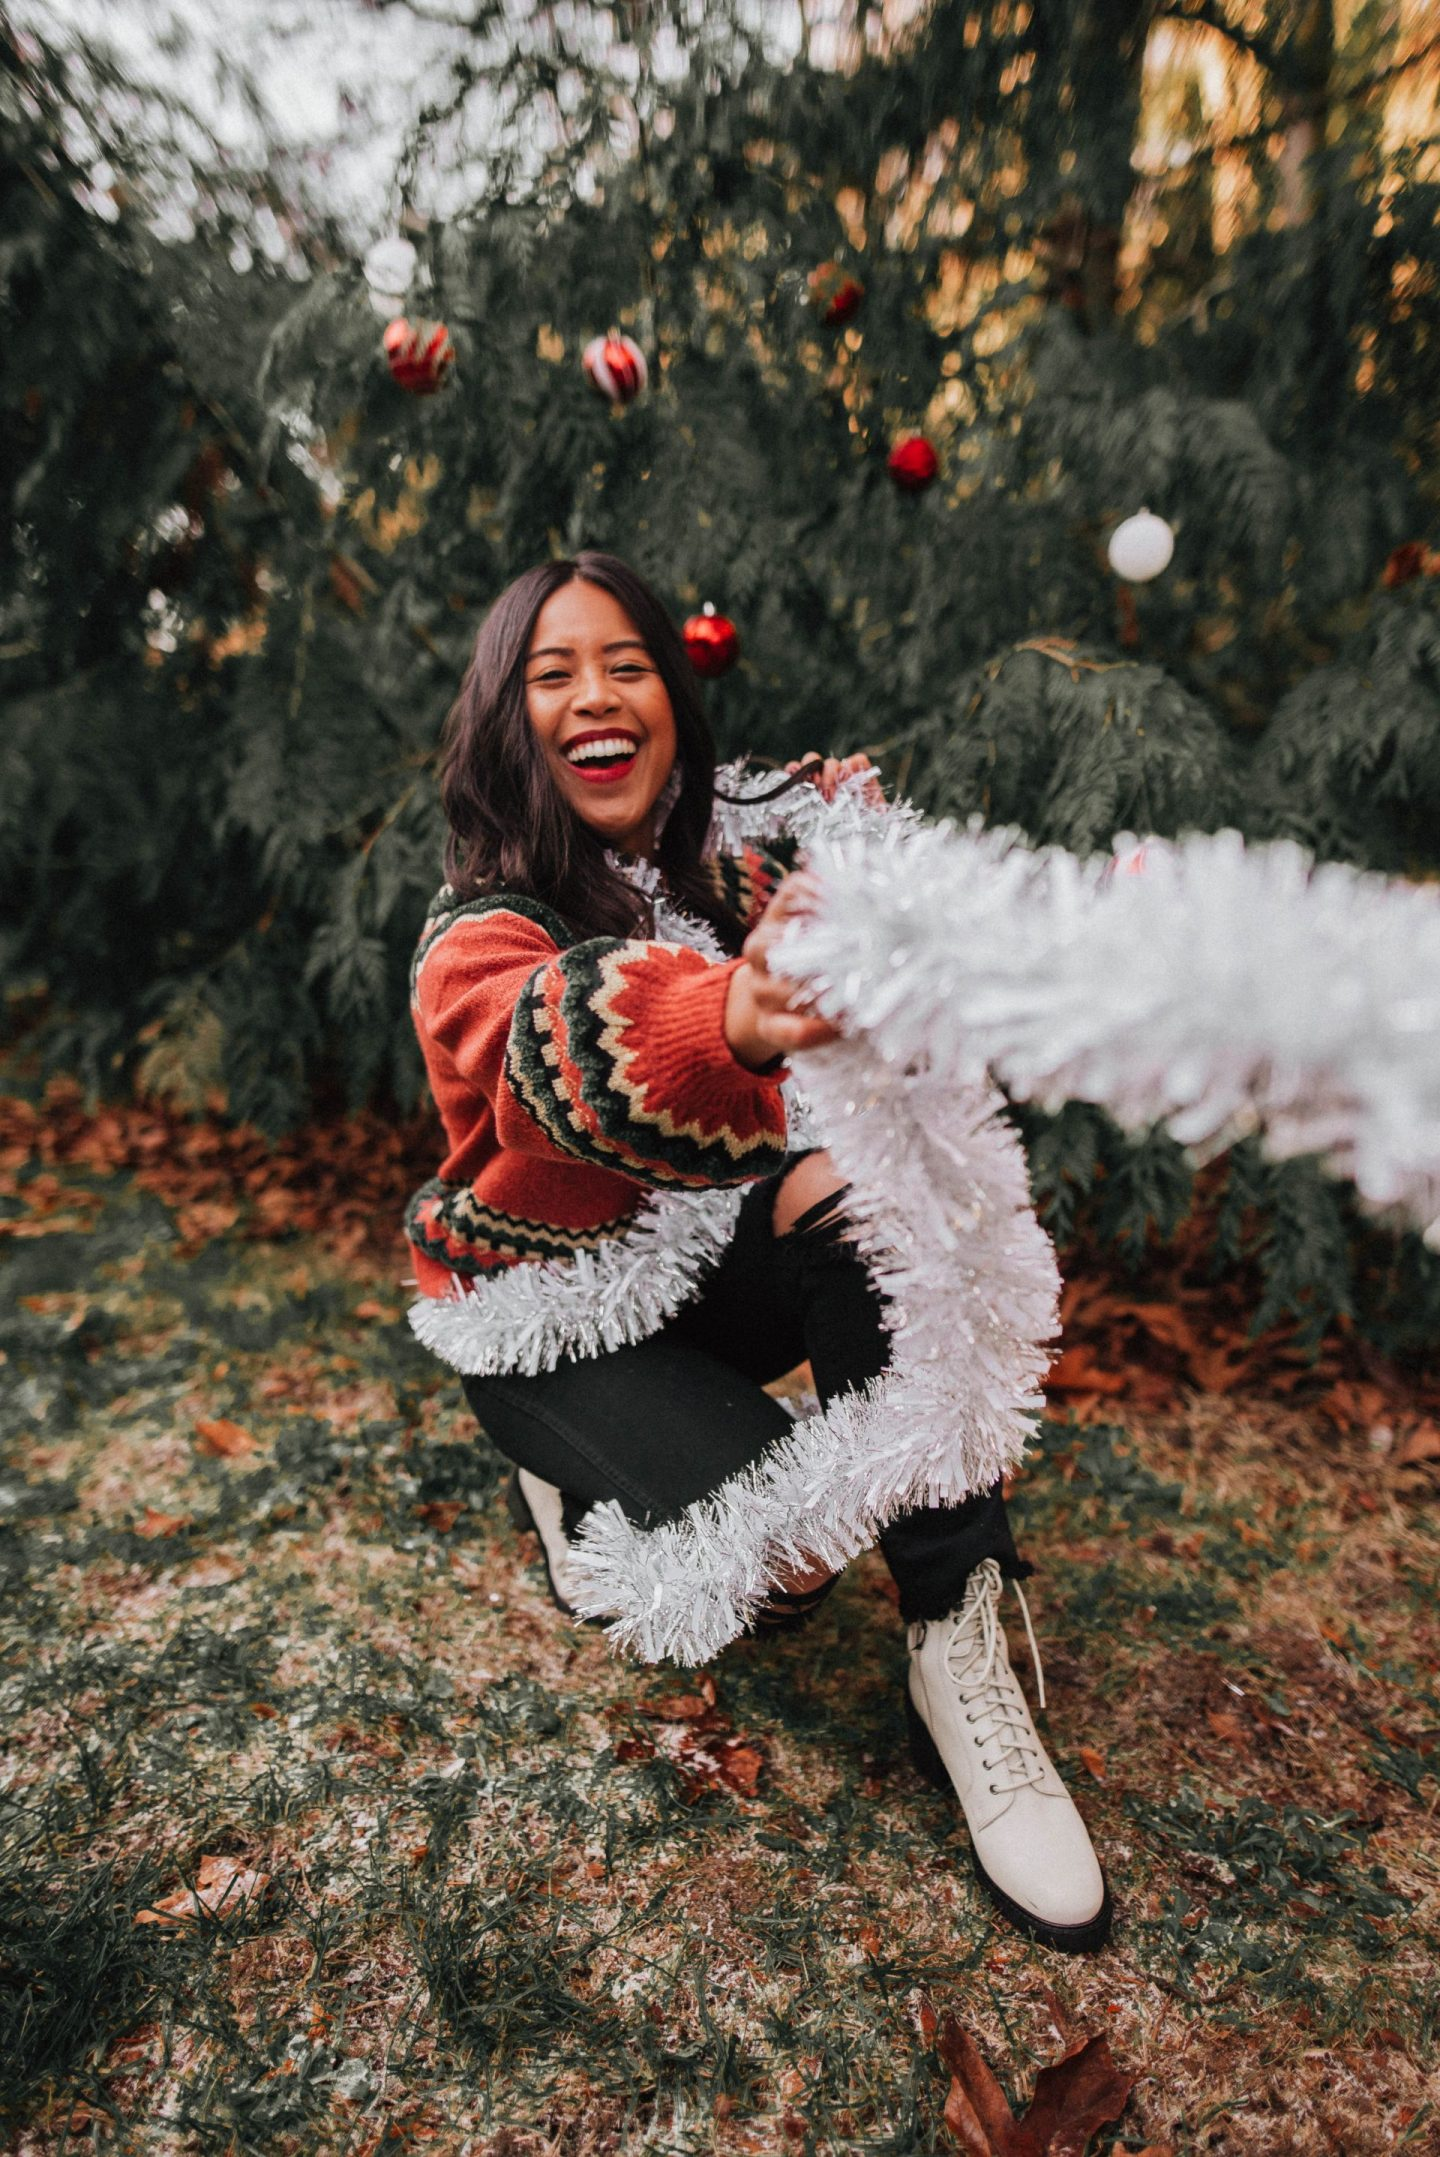 tinsel - winter photo ideas - winter photo ideas Instagram – winter photo shoot – winter photo outfits - winter photo shoot ideas for women – Winter outfit ideas - winter outfit ideas for women casual